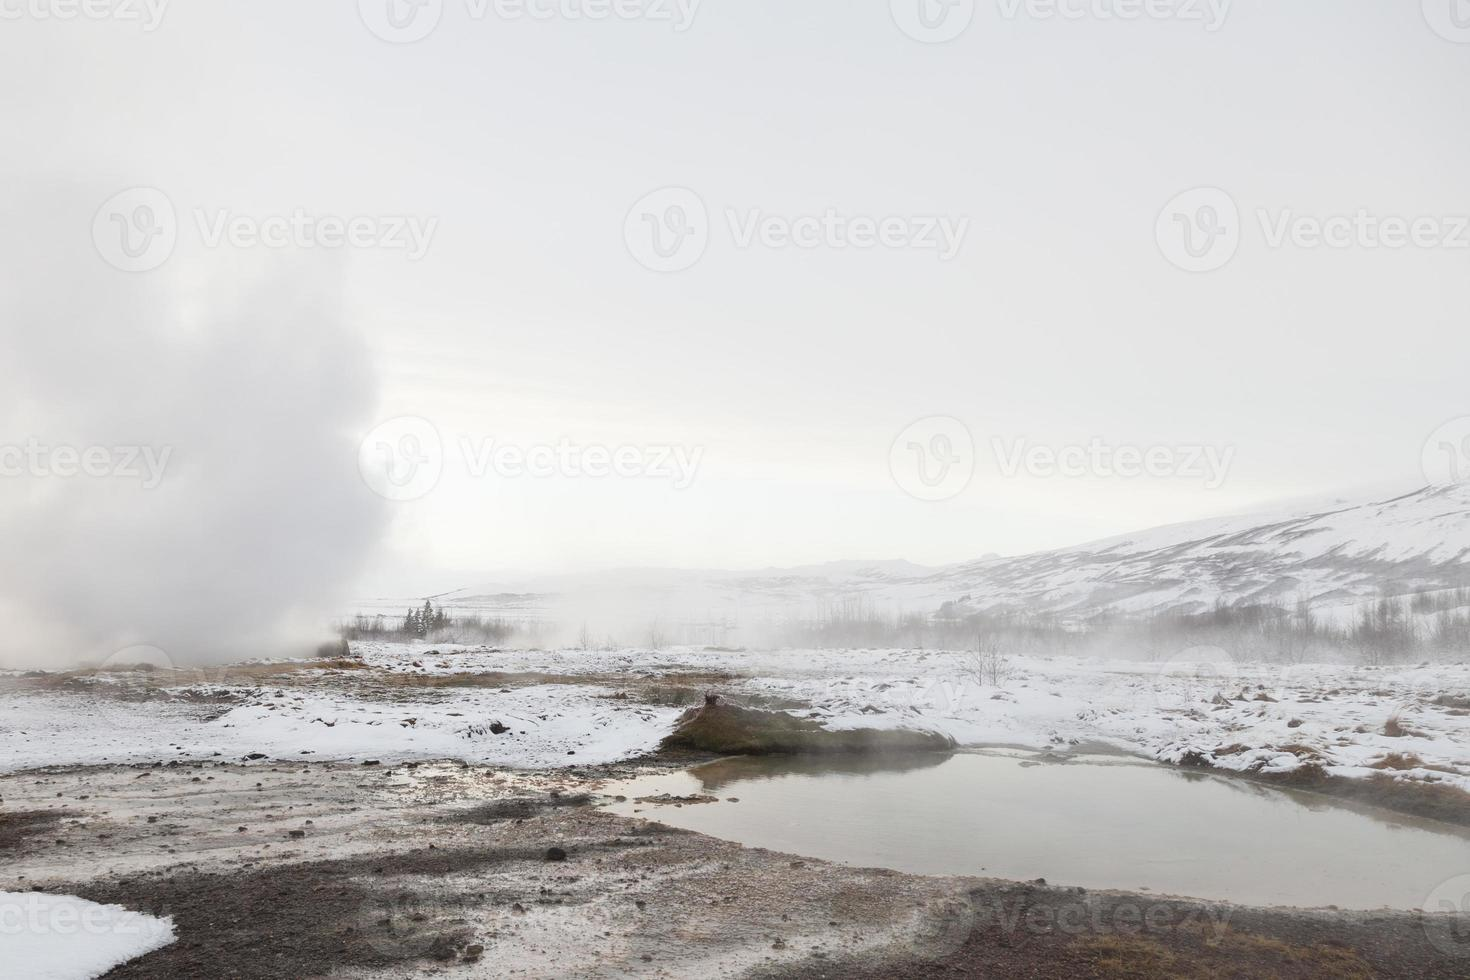 Geothermal fields at Haukadalur, Iceland photo